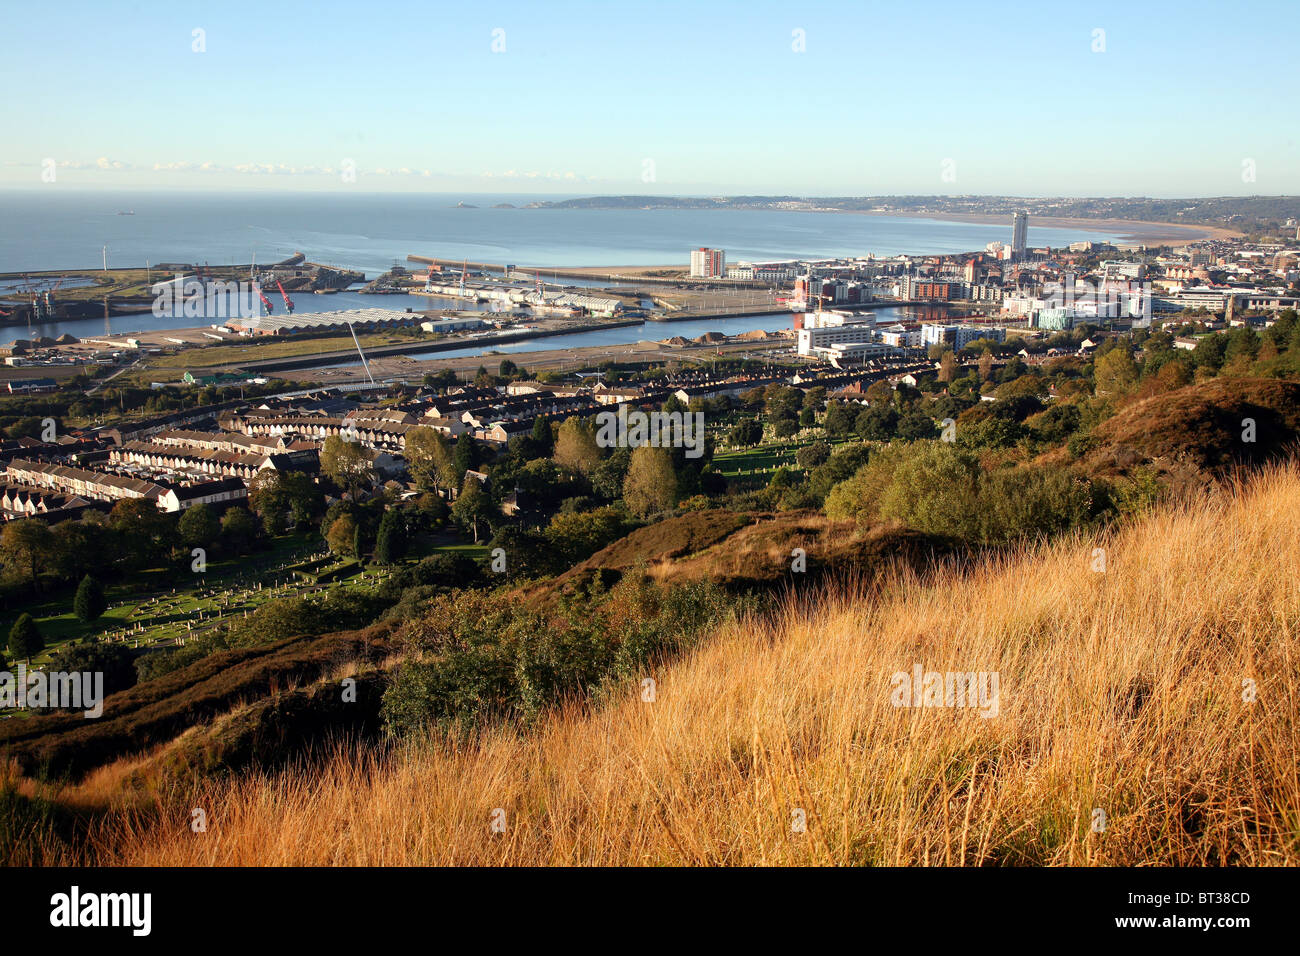 Swansea Wales UK from Kilvey Hill, Autumn 2010 - Stock Image